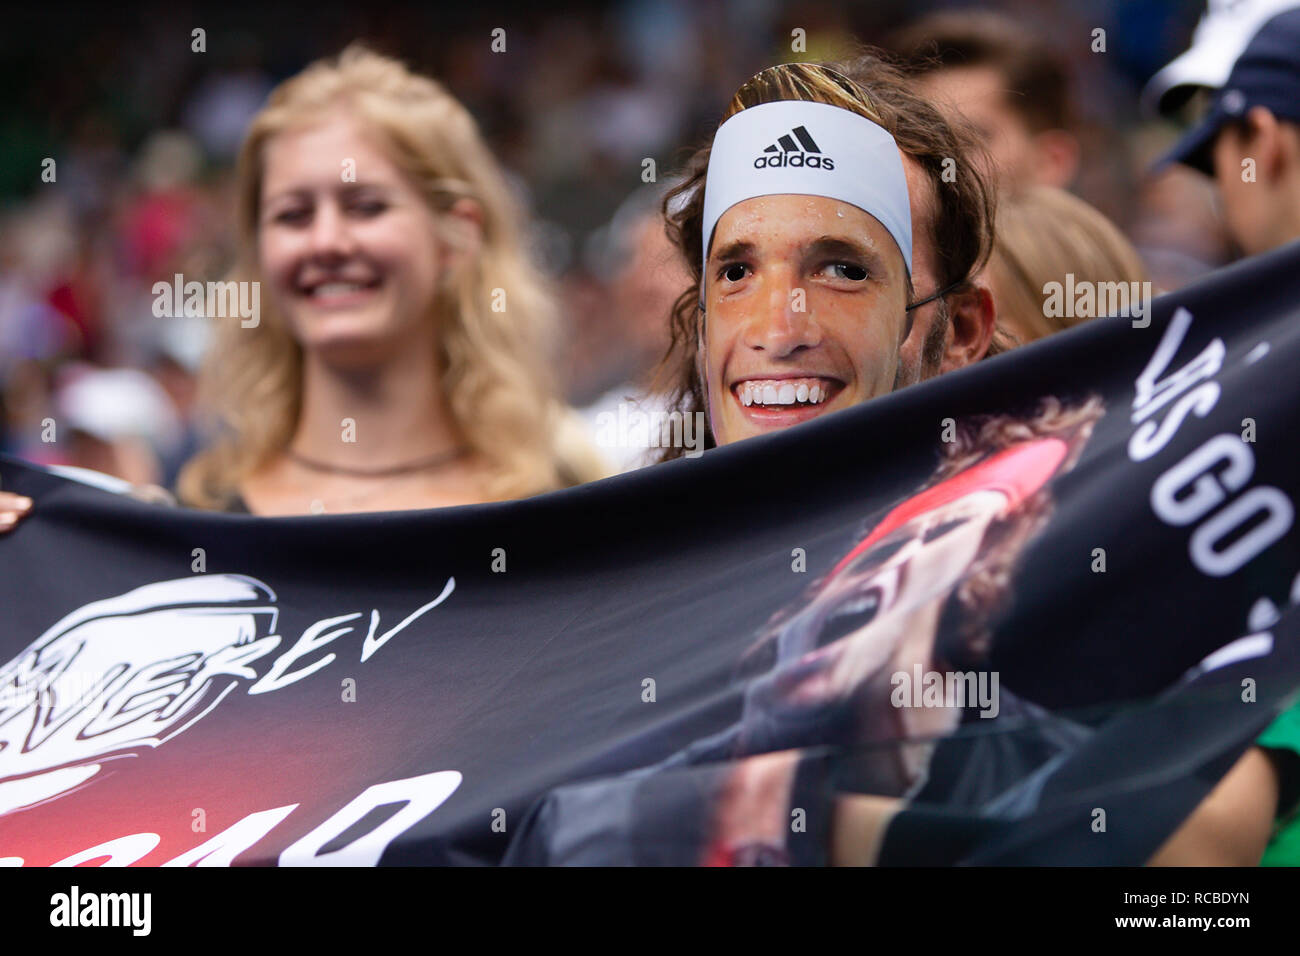 Melbourne, Australia. 15th Jan, 2019. A fan with Alexander Zverev mask cheers for the german player during his1st round match at the 2019 Australian Open Grand Slam tennis tournament in Melbourne, Australia. Frank Molter/Alamy Live news Stock Photo